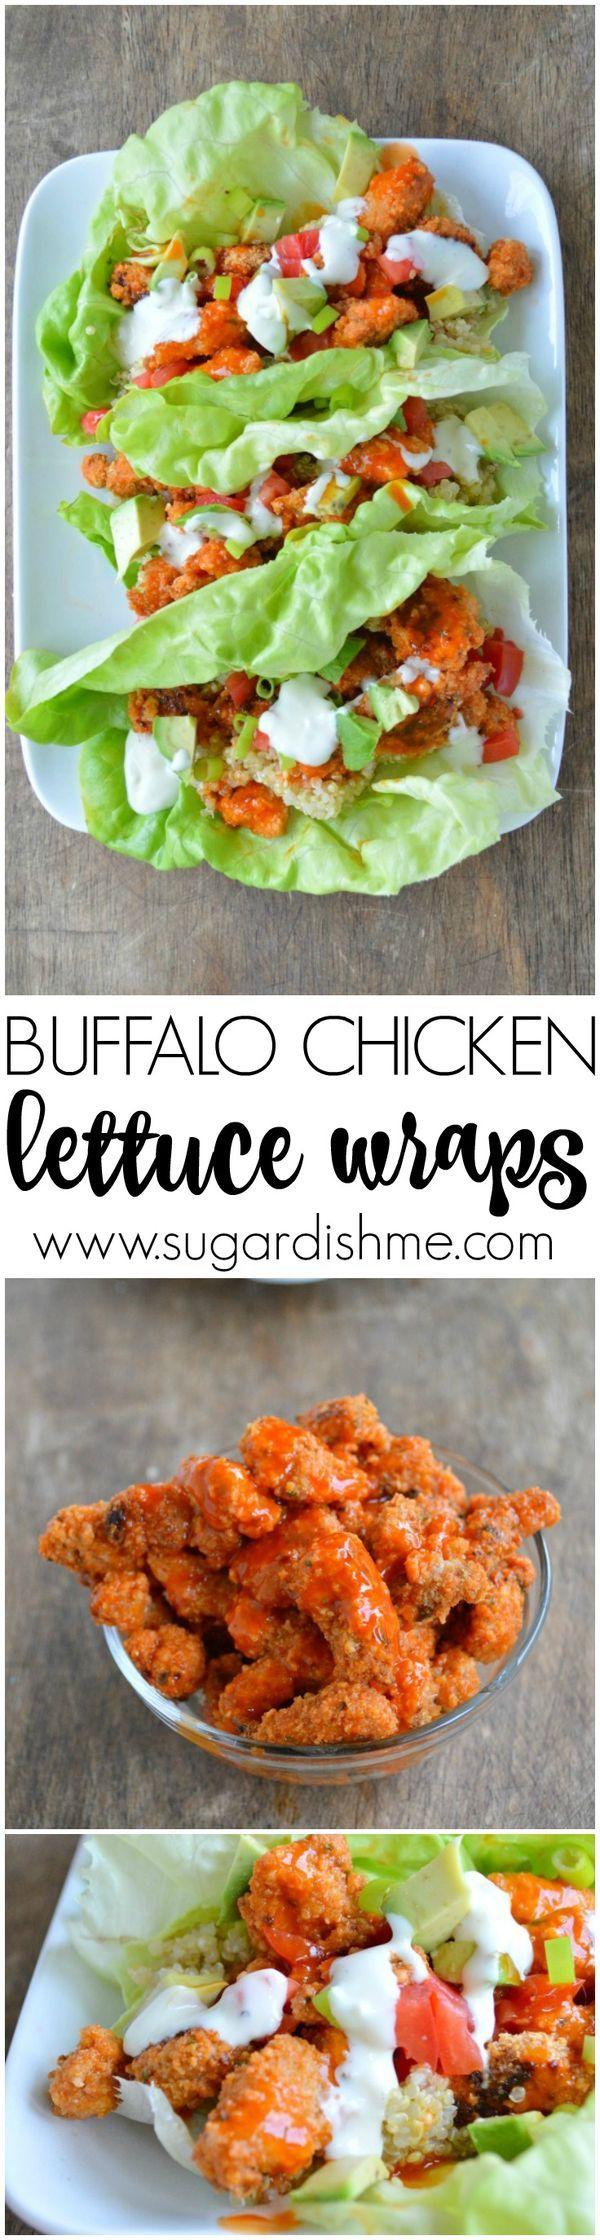 586 best healthy images on pinterest drink clean eating meals and buffalo chicken lettuce wraps have been the top recipe on sugar dish me since 2014 healthy easy foodhealthy forumfinder Gallery